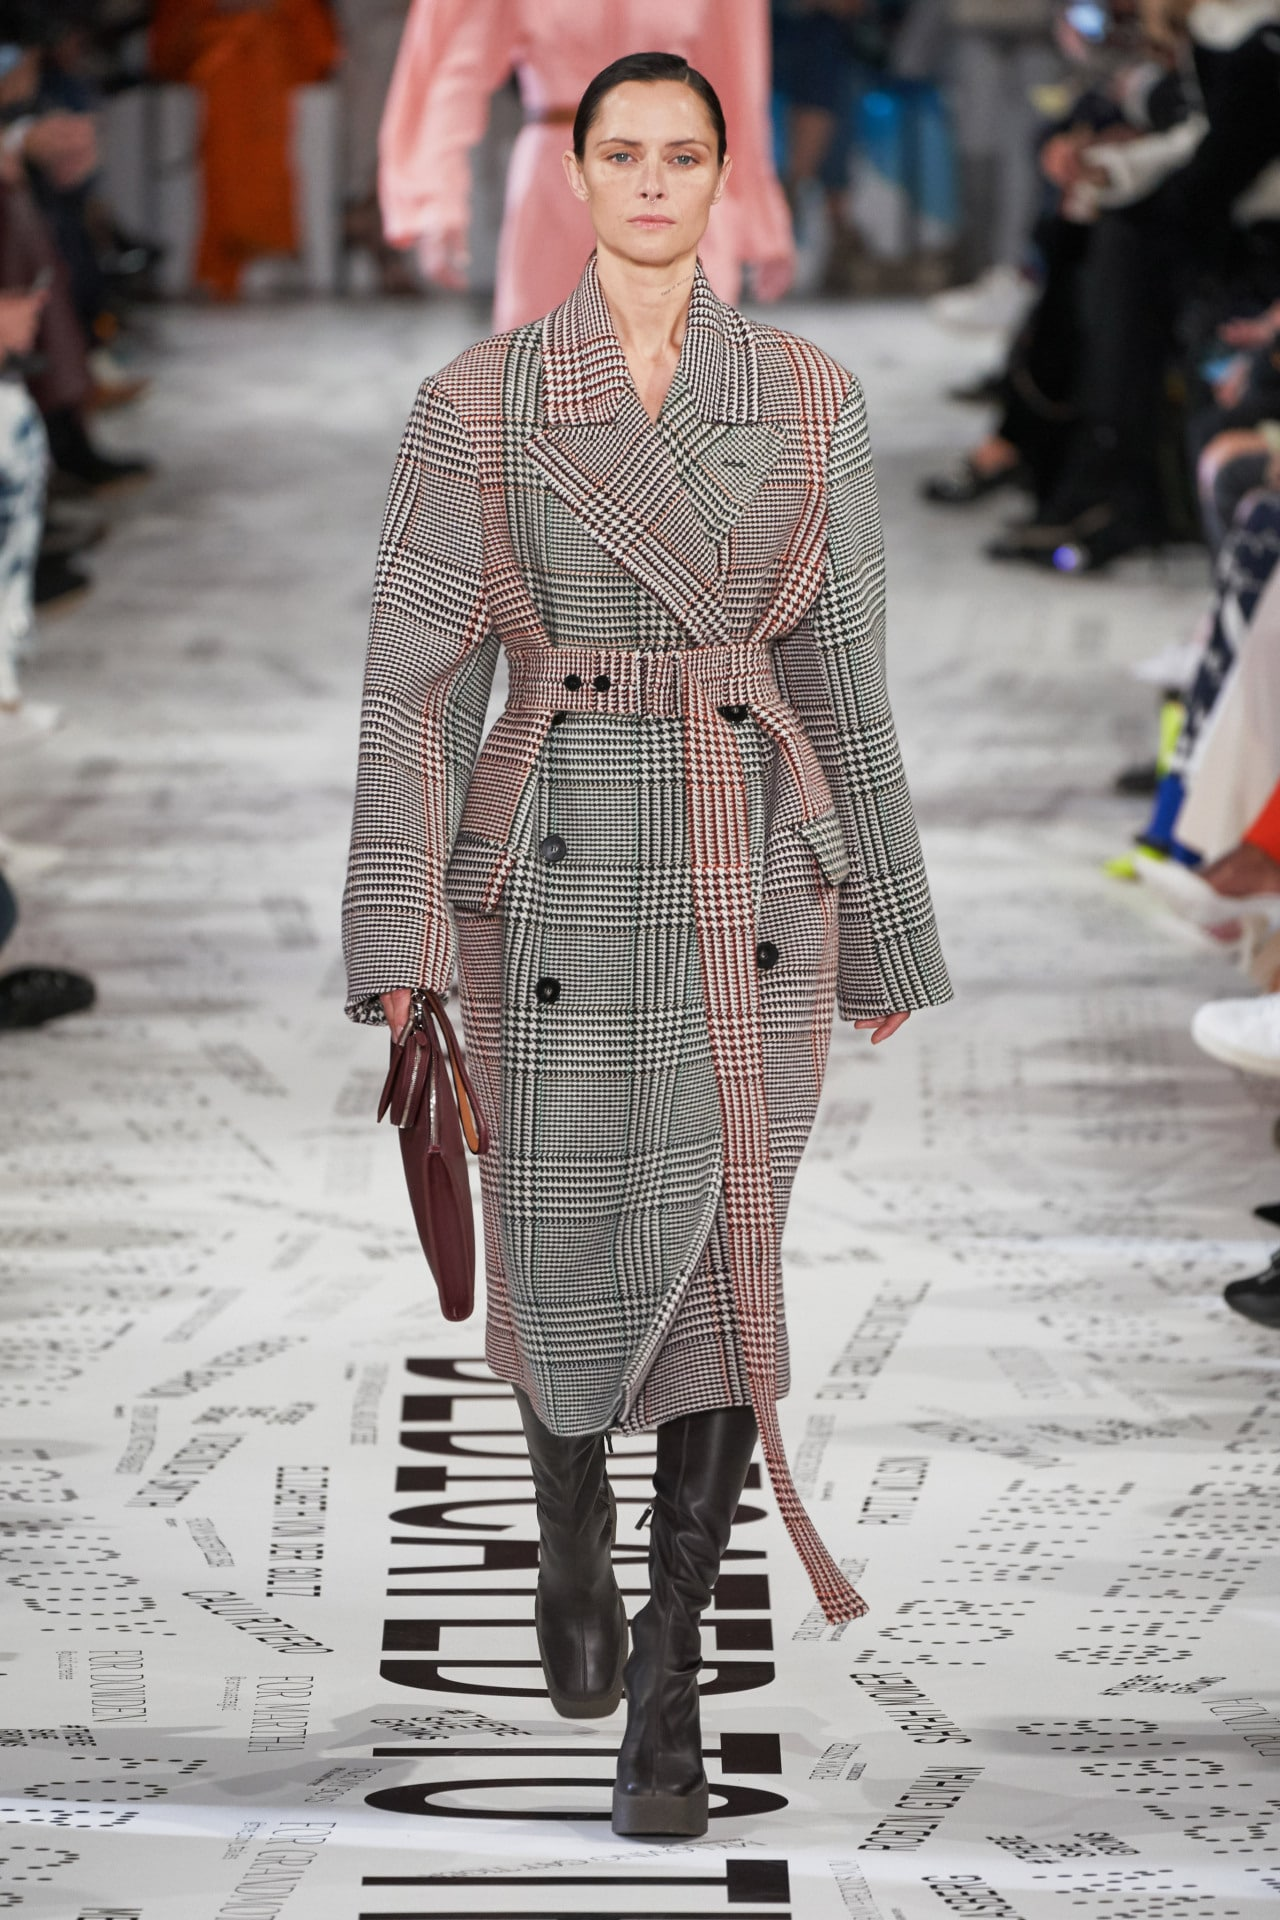 Stella McCartney ready-to-wear autumn/winter '19/'20. Image credit: Gorunway.com